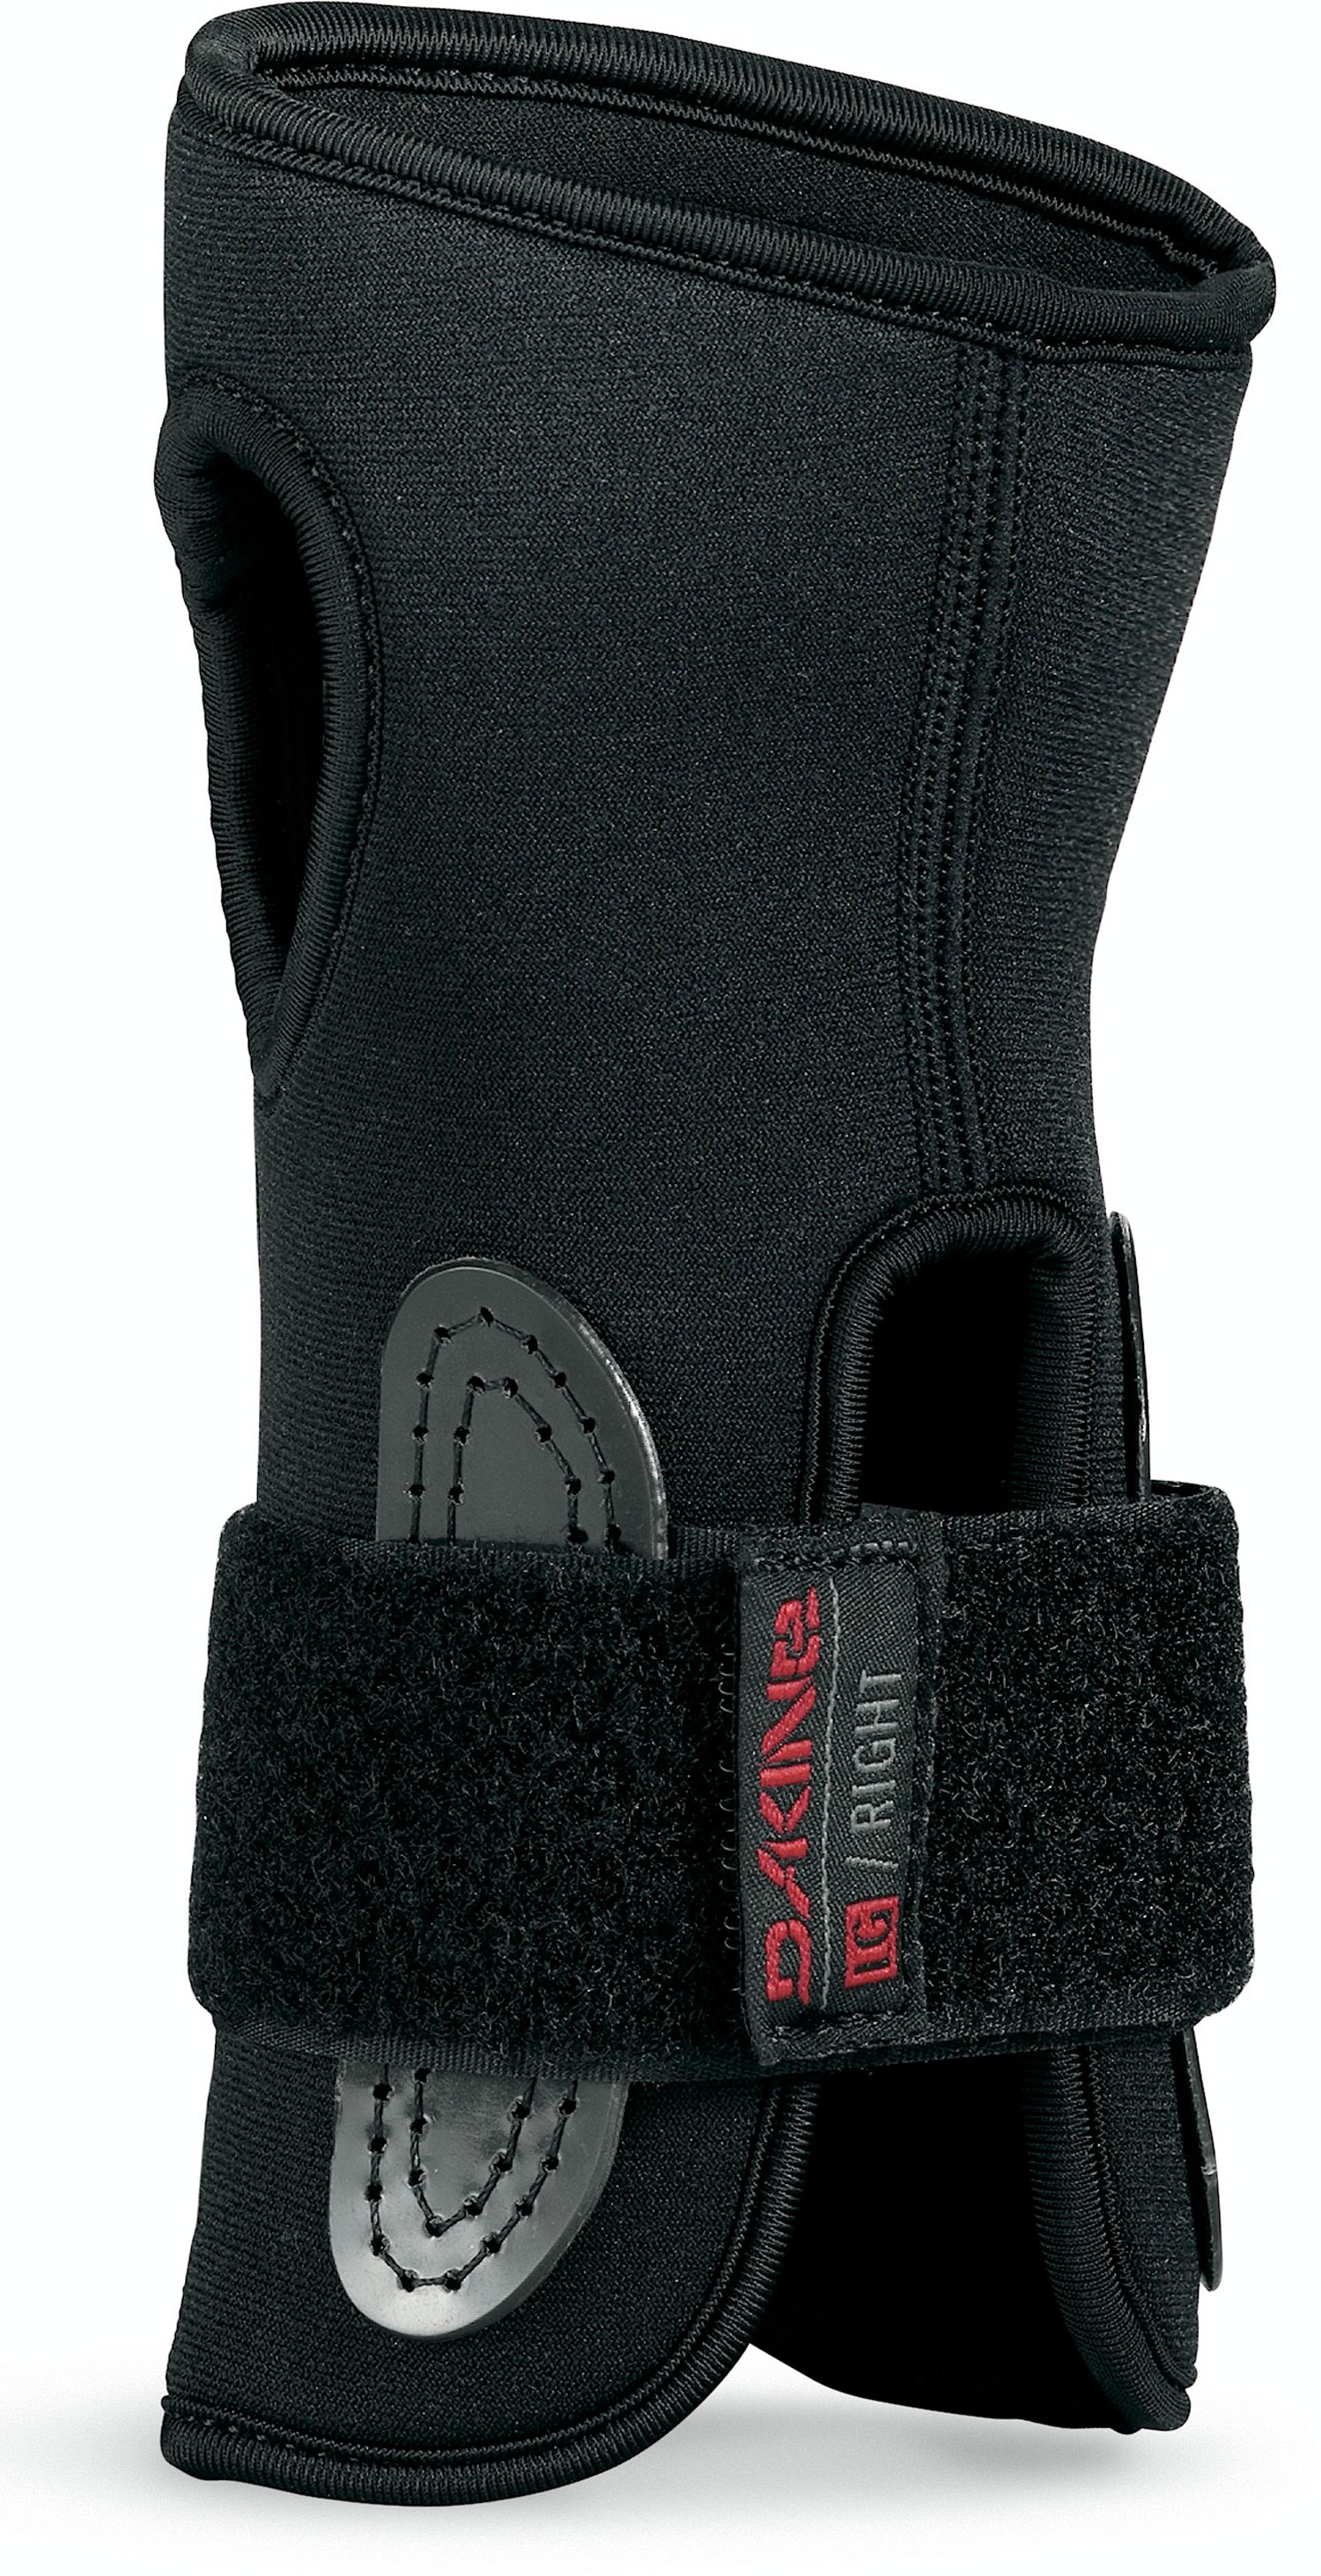 Surf Key Features of the Dakine Wrist Guards: Low profile design for use inside gloves Lightweight internal aluminum stay Neoprene stretch body for maximum comfort adjustable hook and loop wrist cinch - $15.00